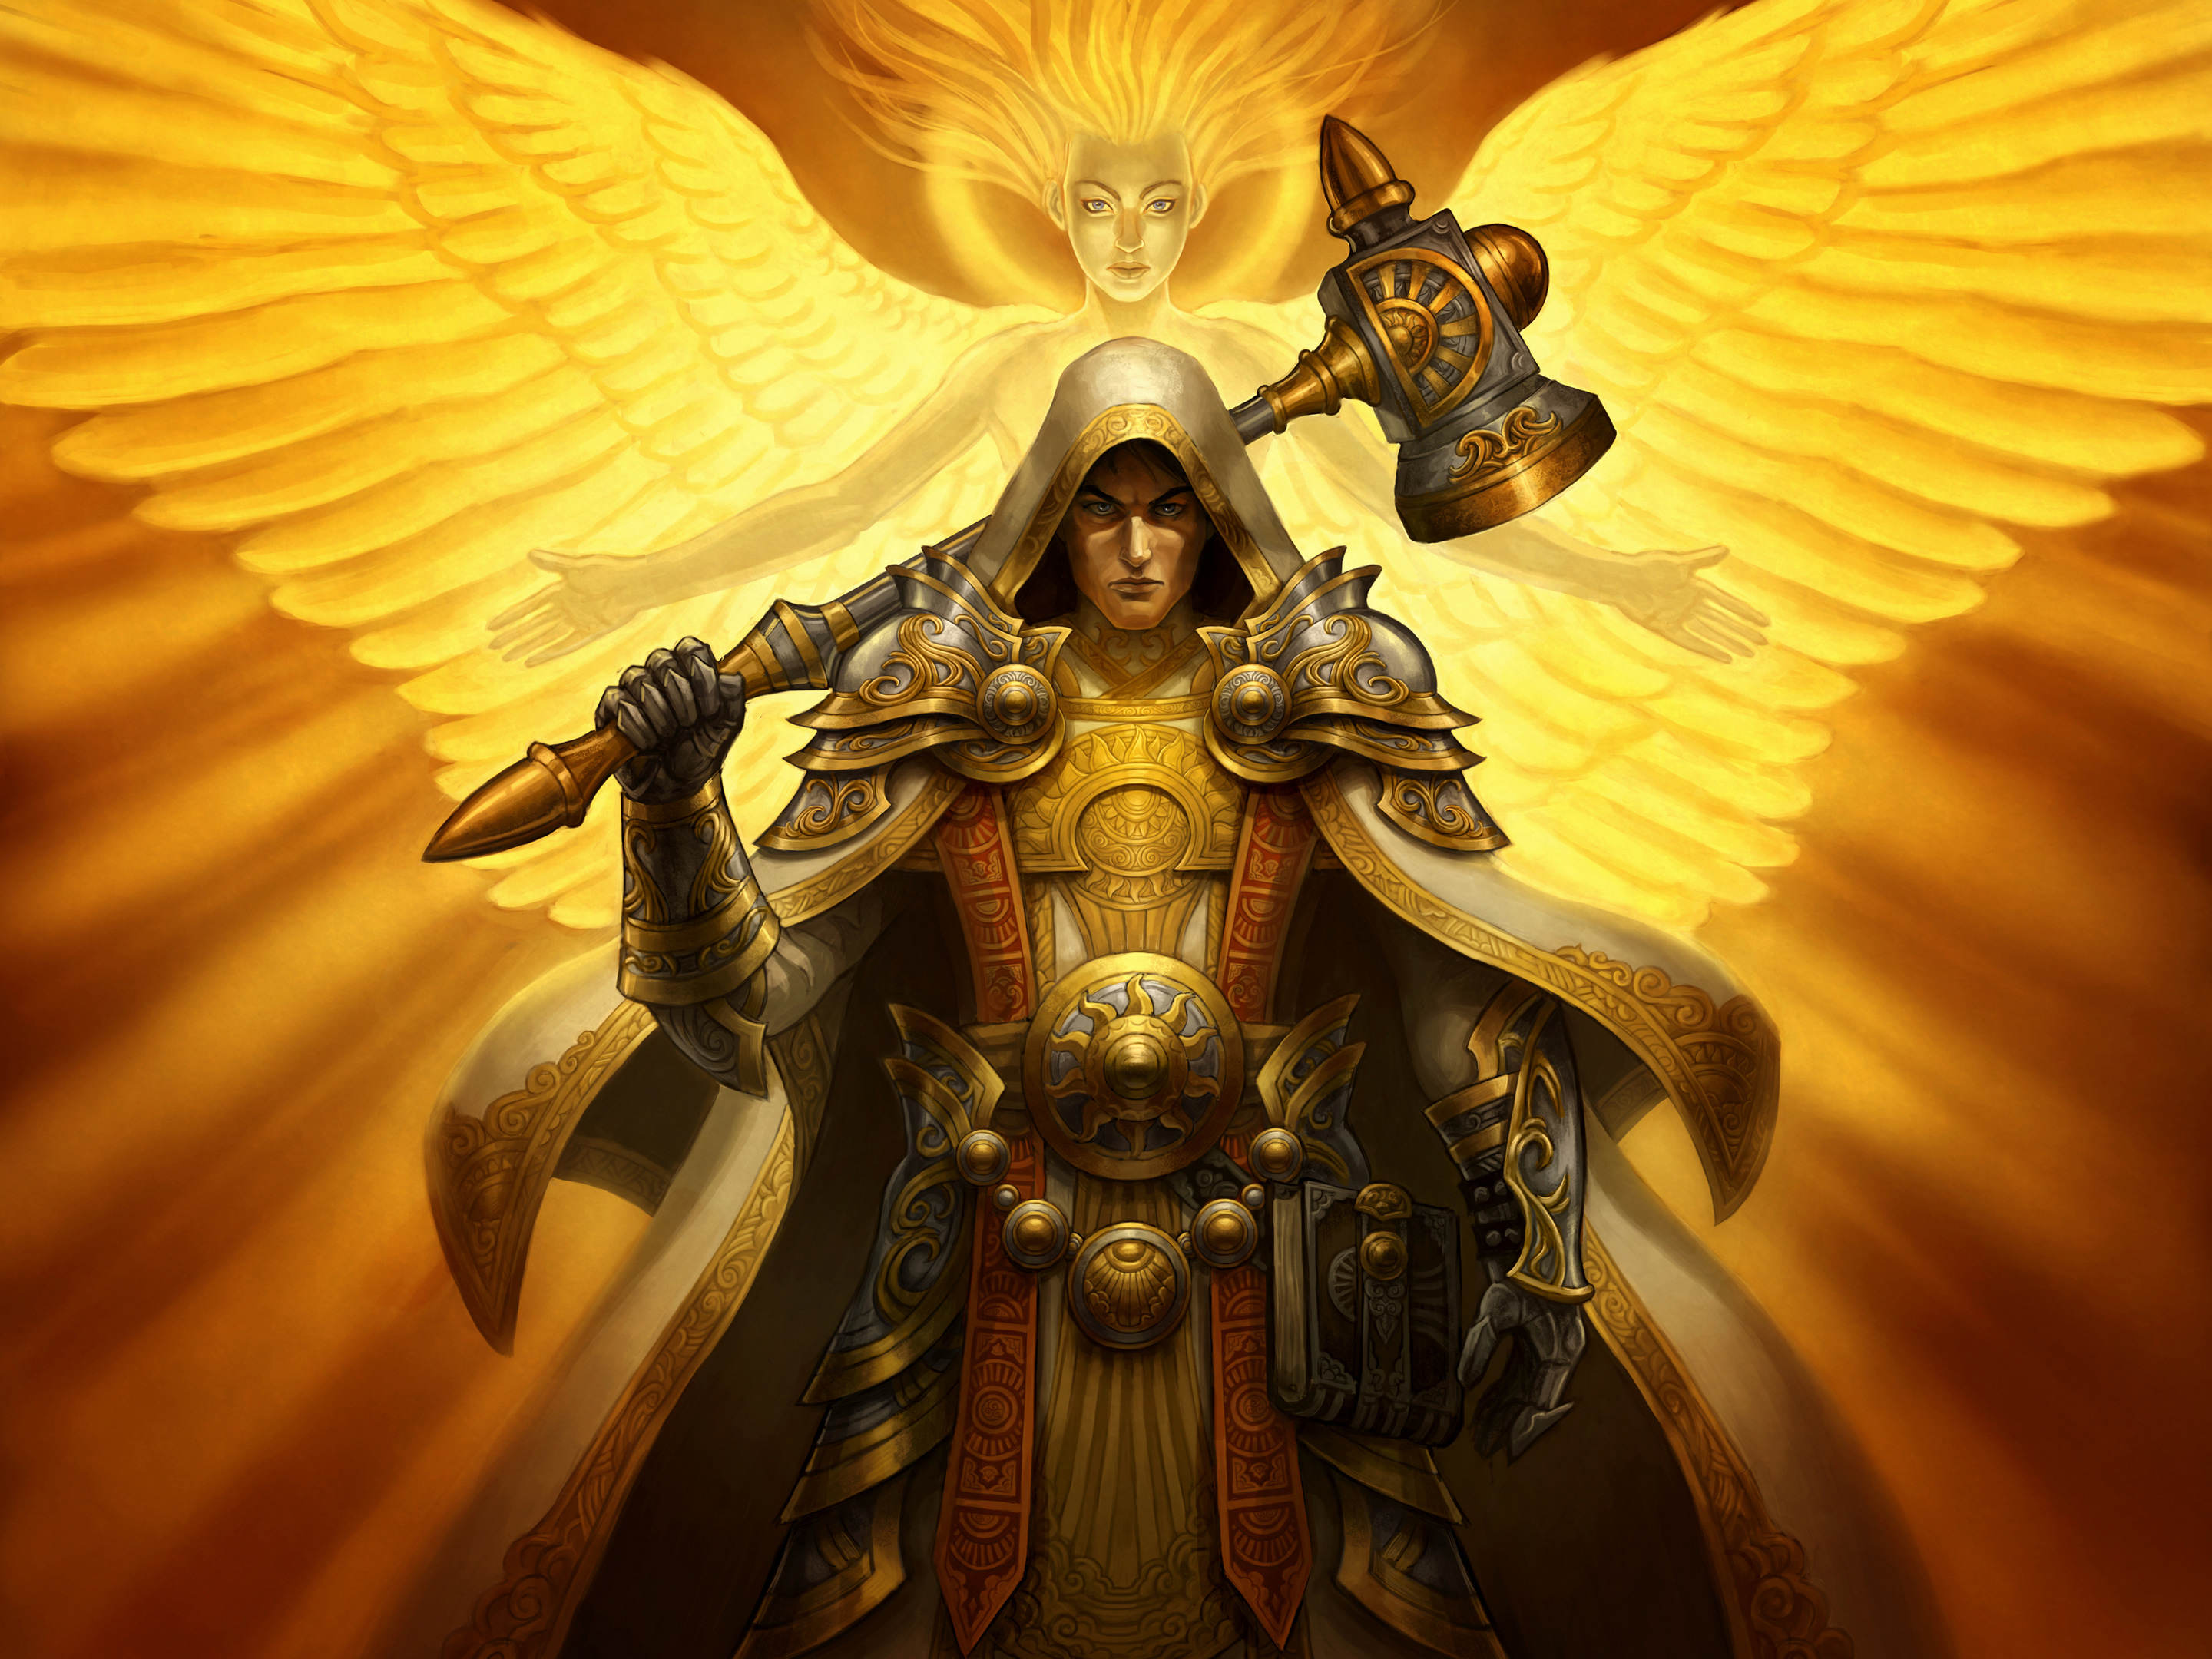 Angel Warrior Backgrounds, Compatible - PC, Mobile, Gadgets| 2880x2160 px